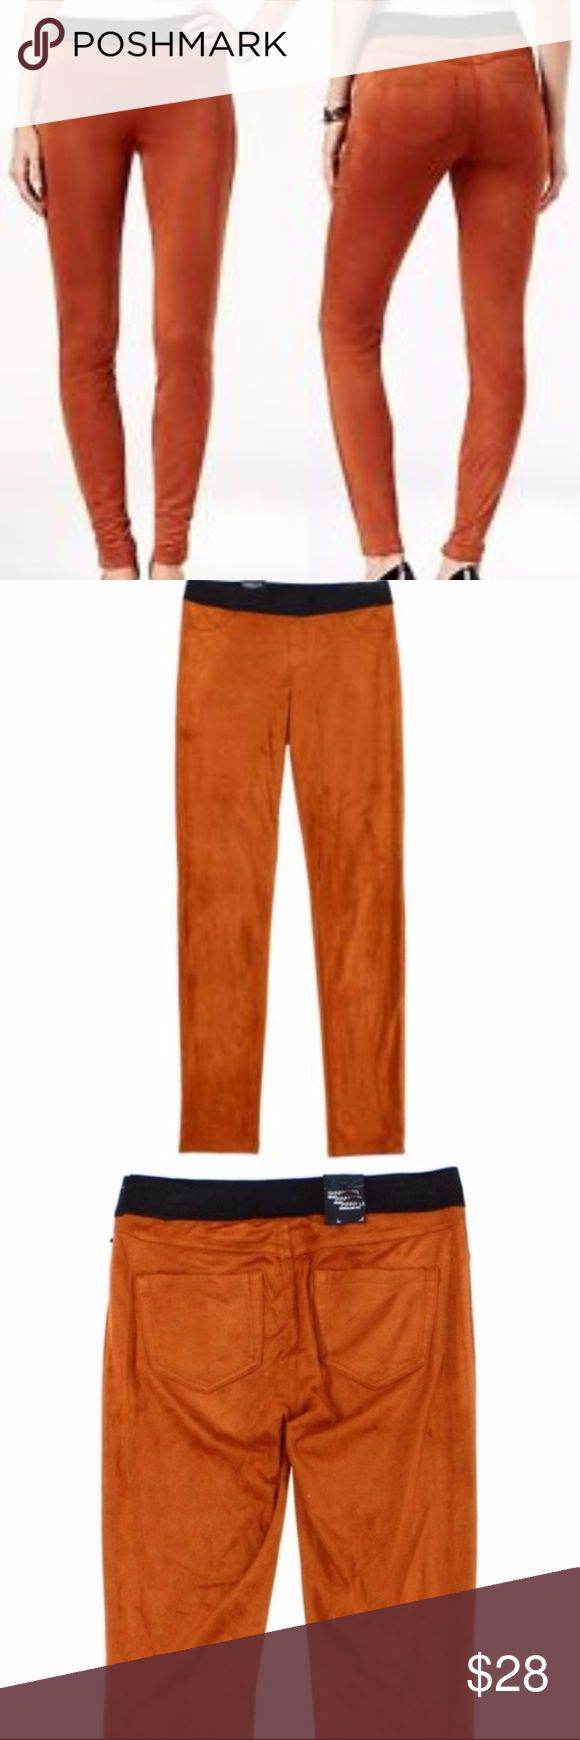 """INC Faux Suede Rawhide Skinny Leggings NWT INC International Concepts is classic, versatile fashion for women and great addition to your fall wardrobe. Affordable quality professional and casual wardrobe wear. Pants are pull on with a flat front and patch pockets on the back. Color is rawhide and is more like a burnt orange/brown color. 88% polyester, 12% spandex  Measurements: Inseam: approx. 31"""" Rise: approx. 10"""" INC International Concepts Pants Leggings"""